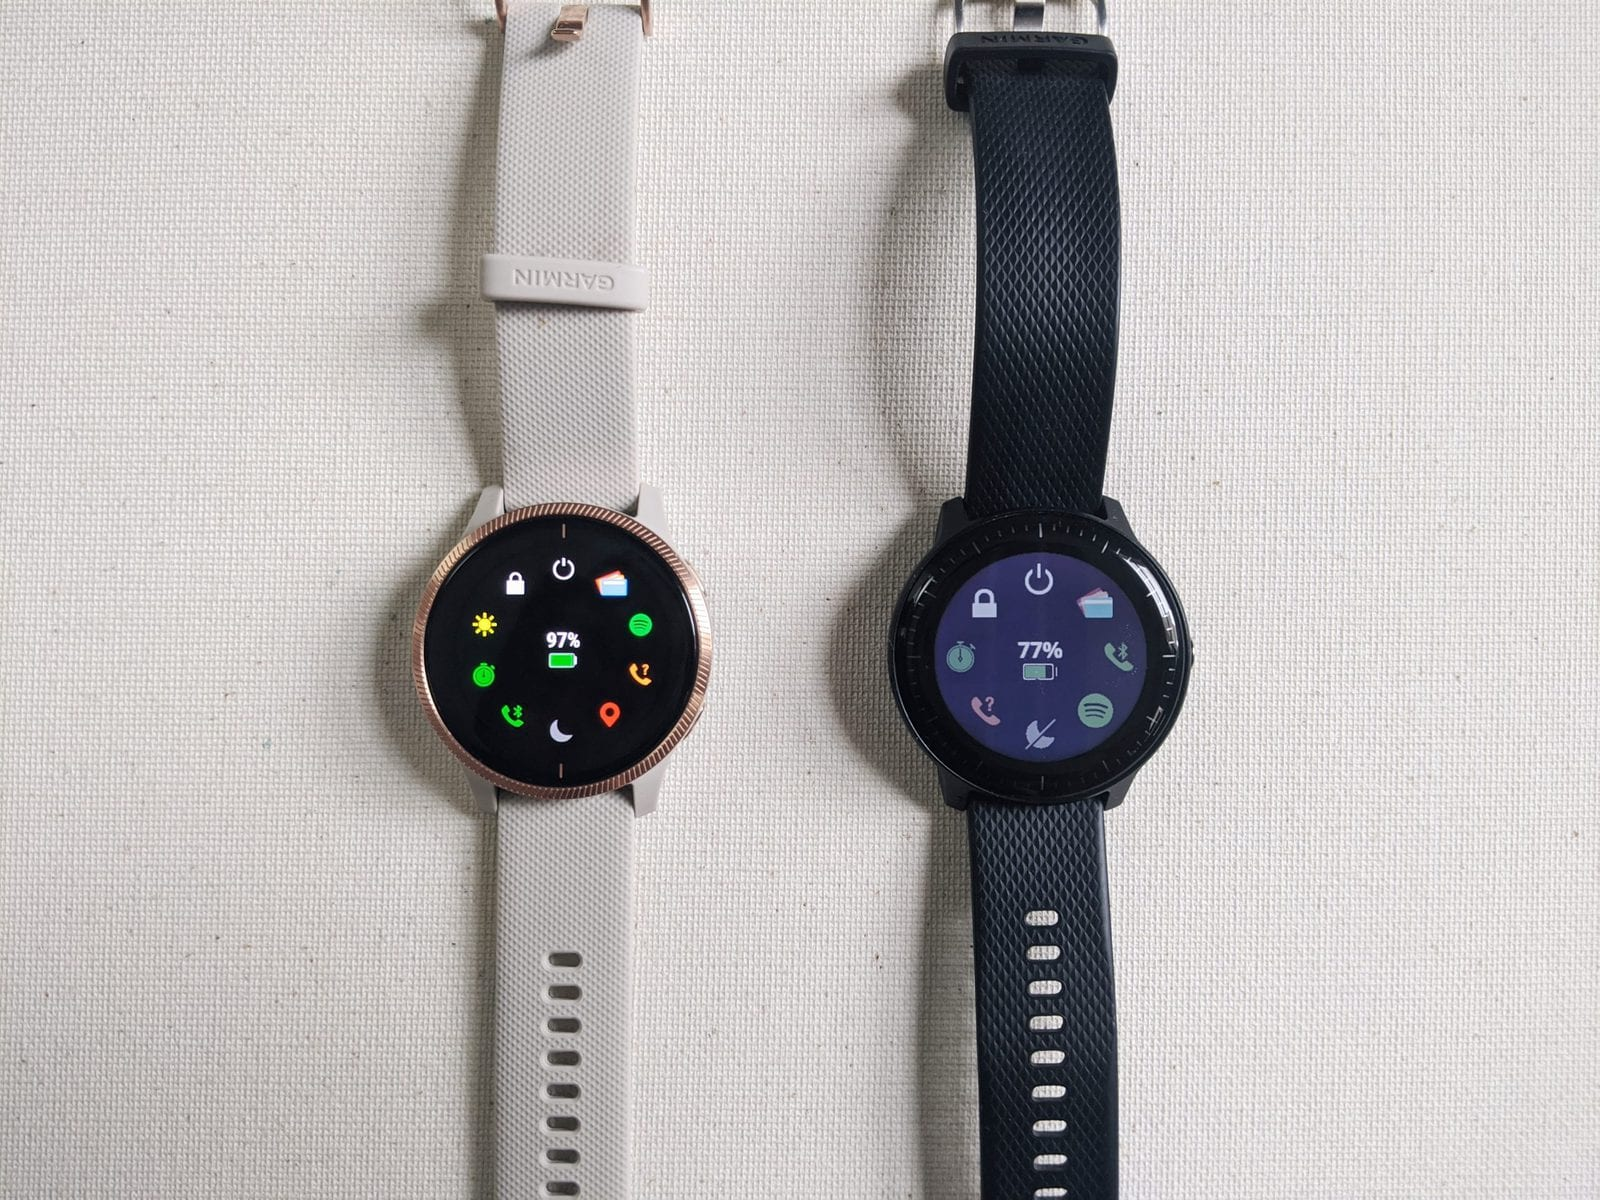 Garmin Venu vs Vivoactive 3 Music display